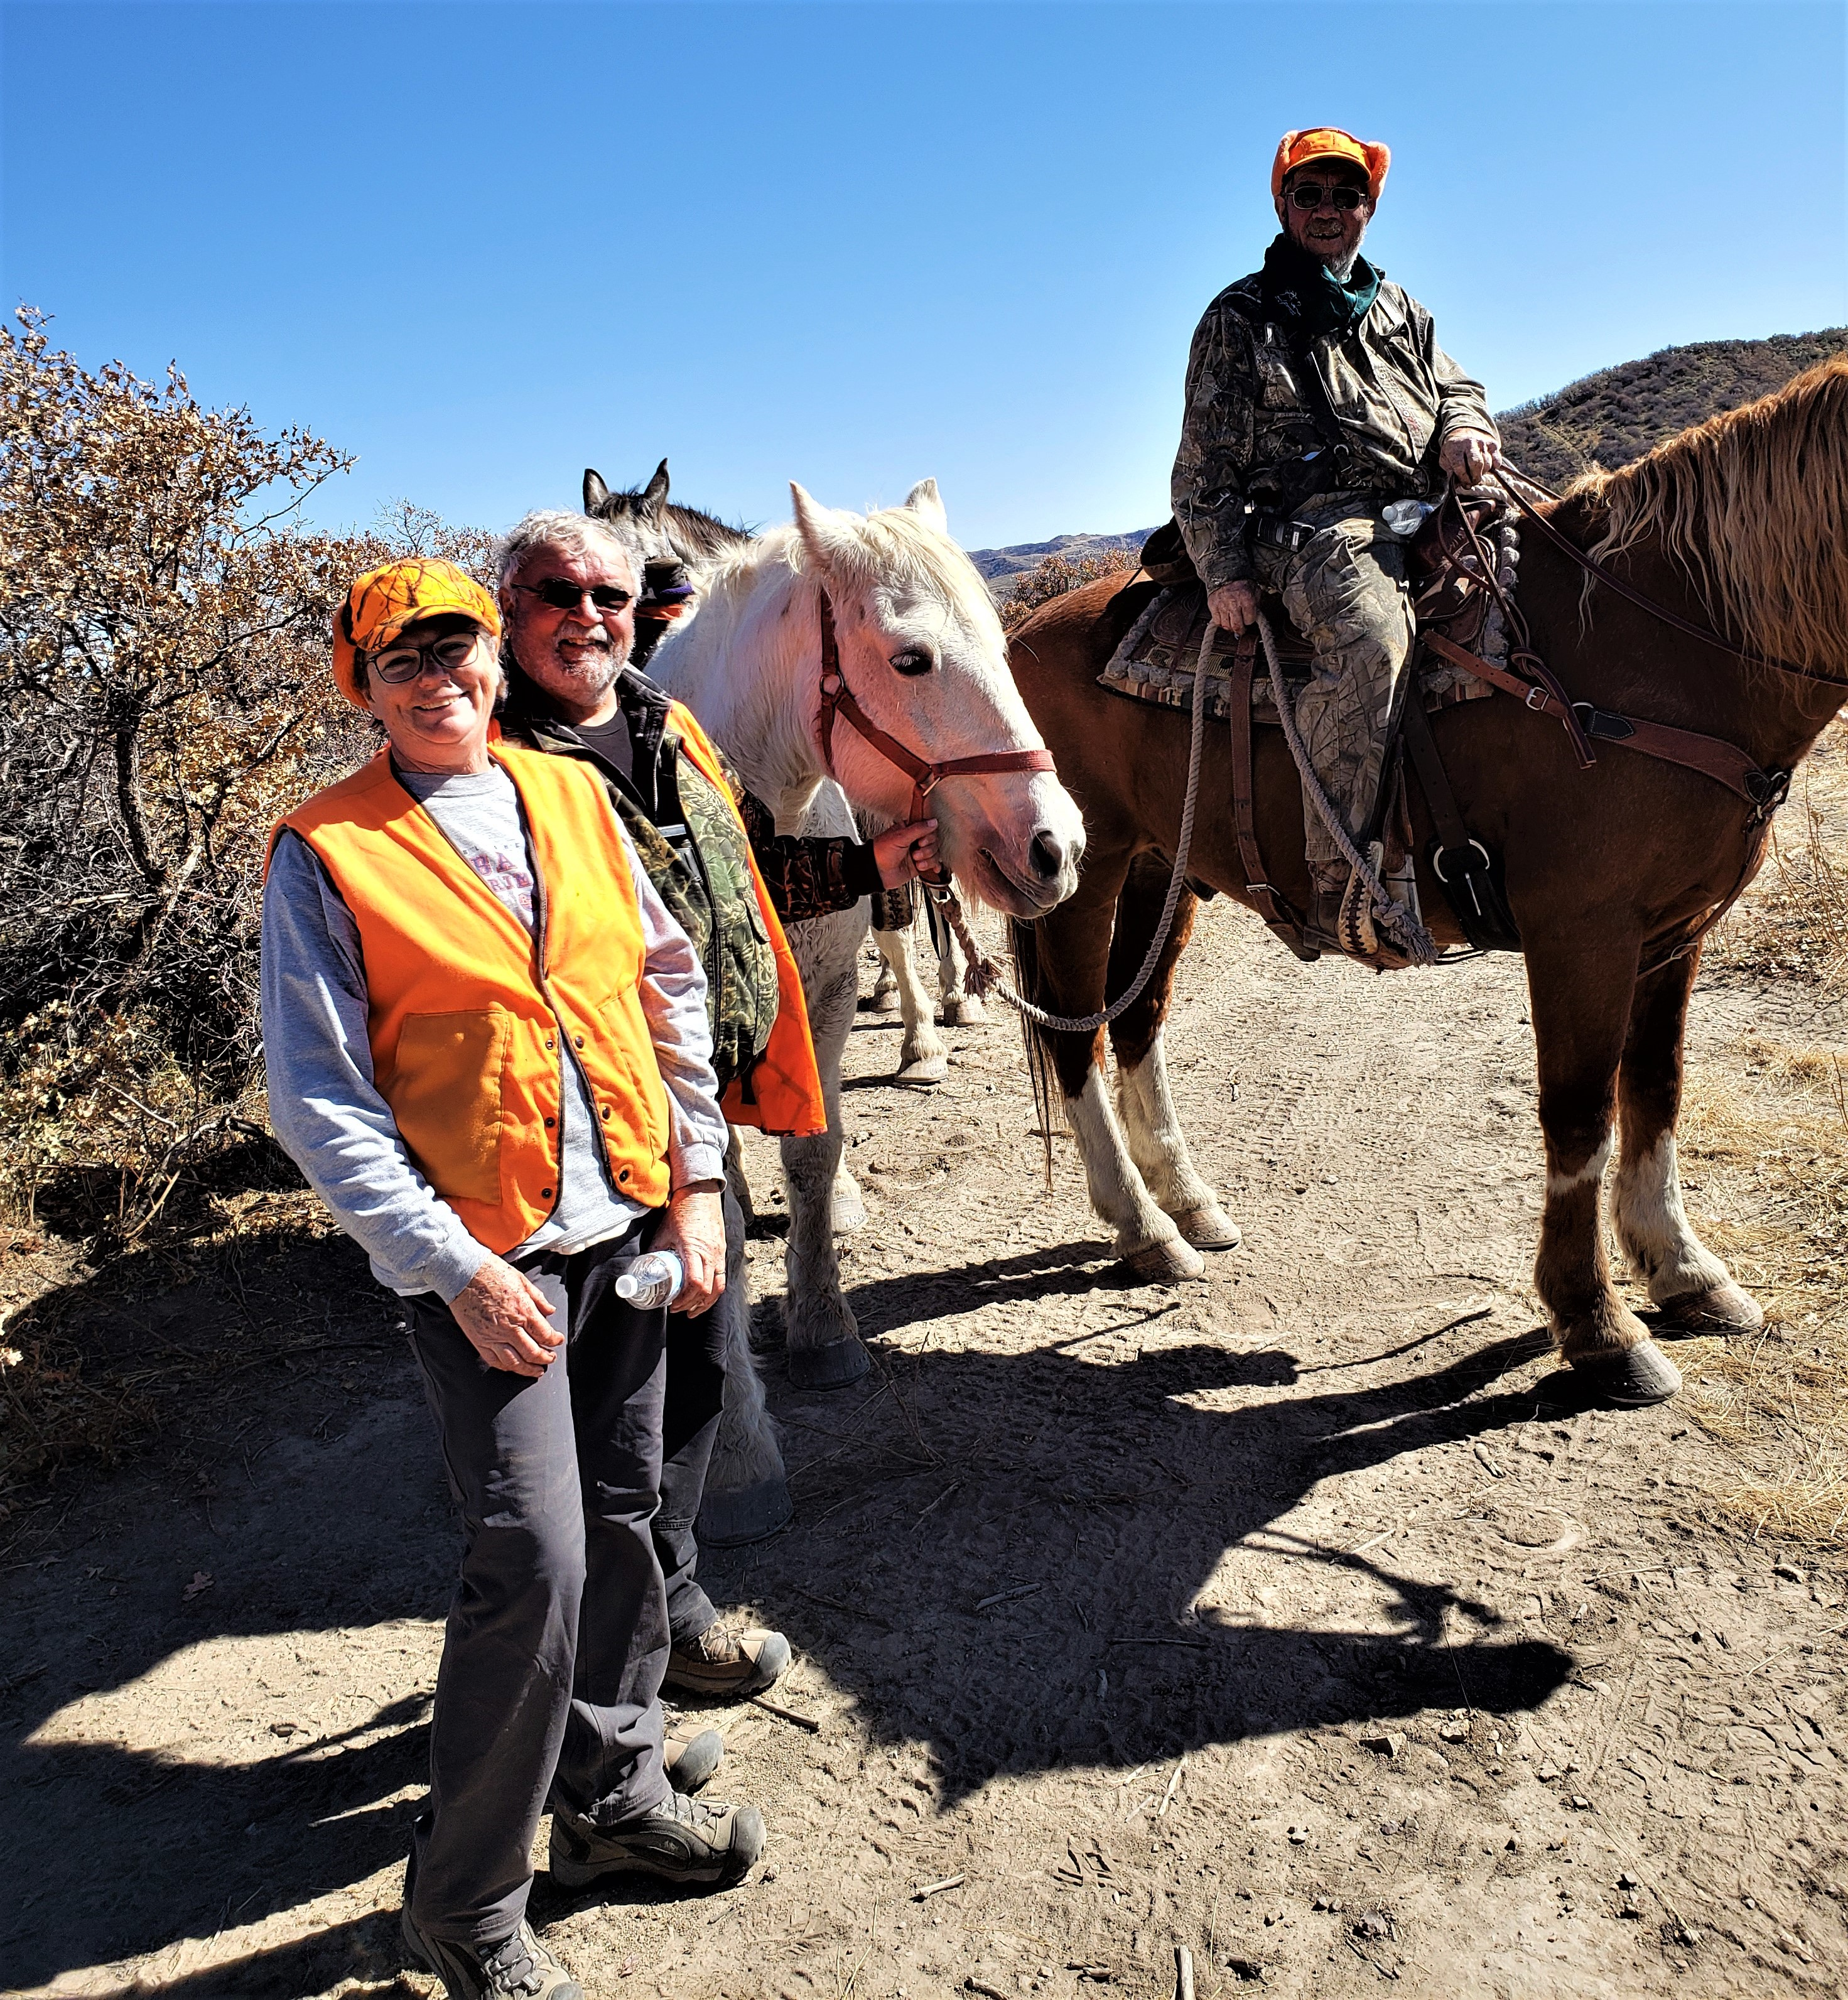 Ron & Helen with horses